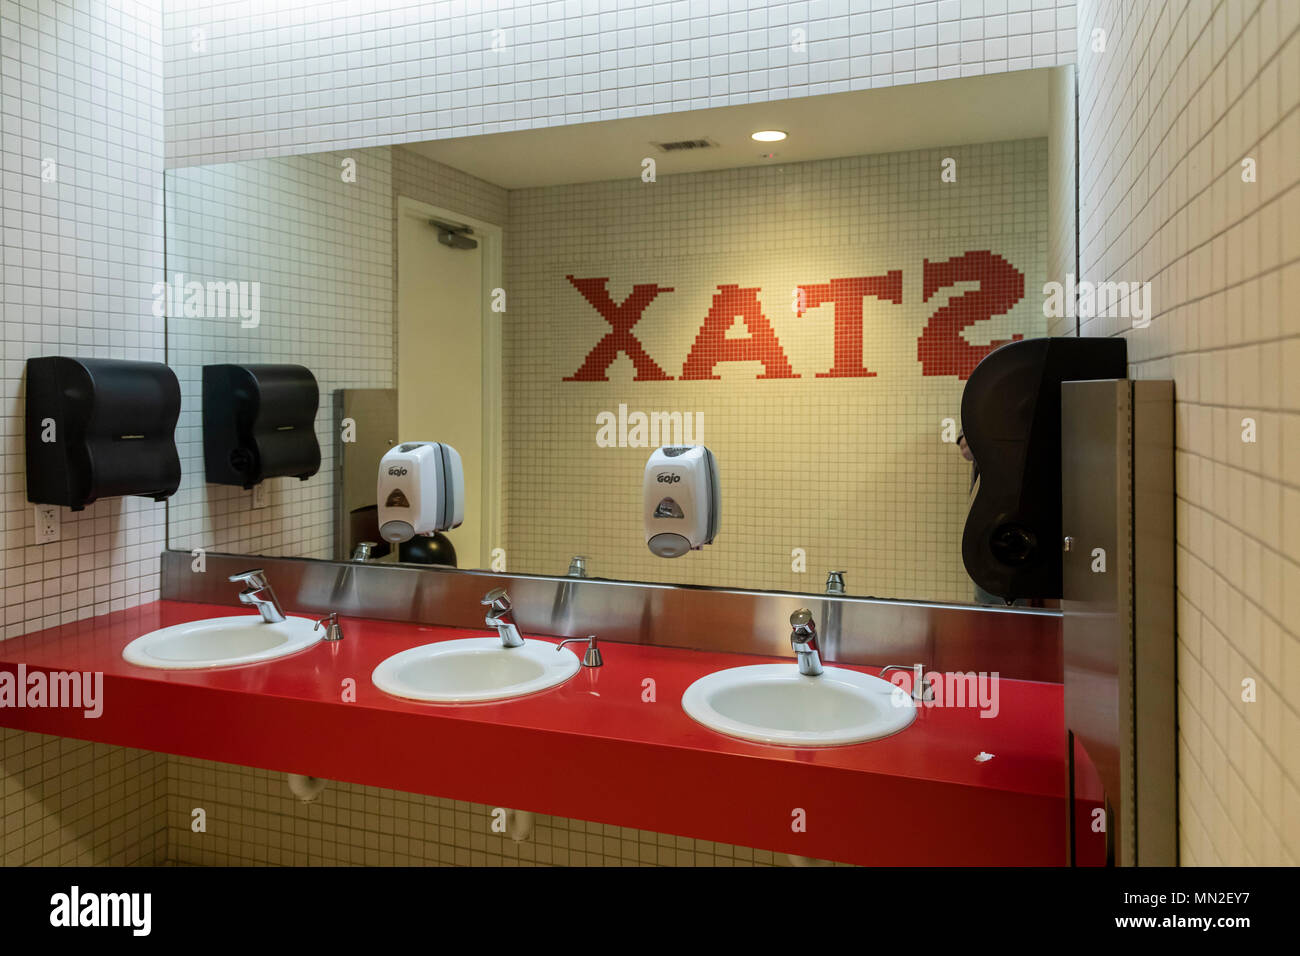 Memphis, Tennessee - A restroom at the Stax Museum of American Soul Music, the former location of Stax Records. - Stock Image